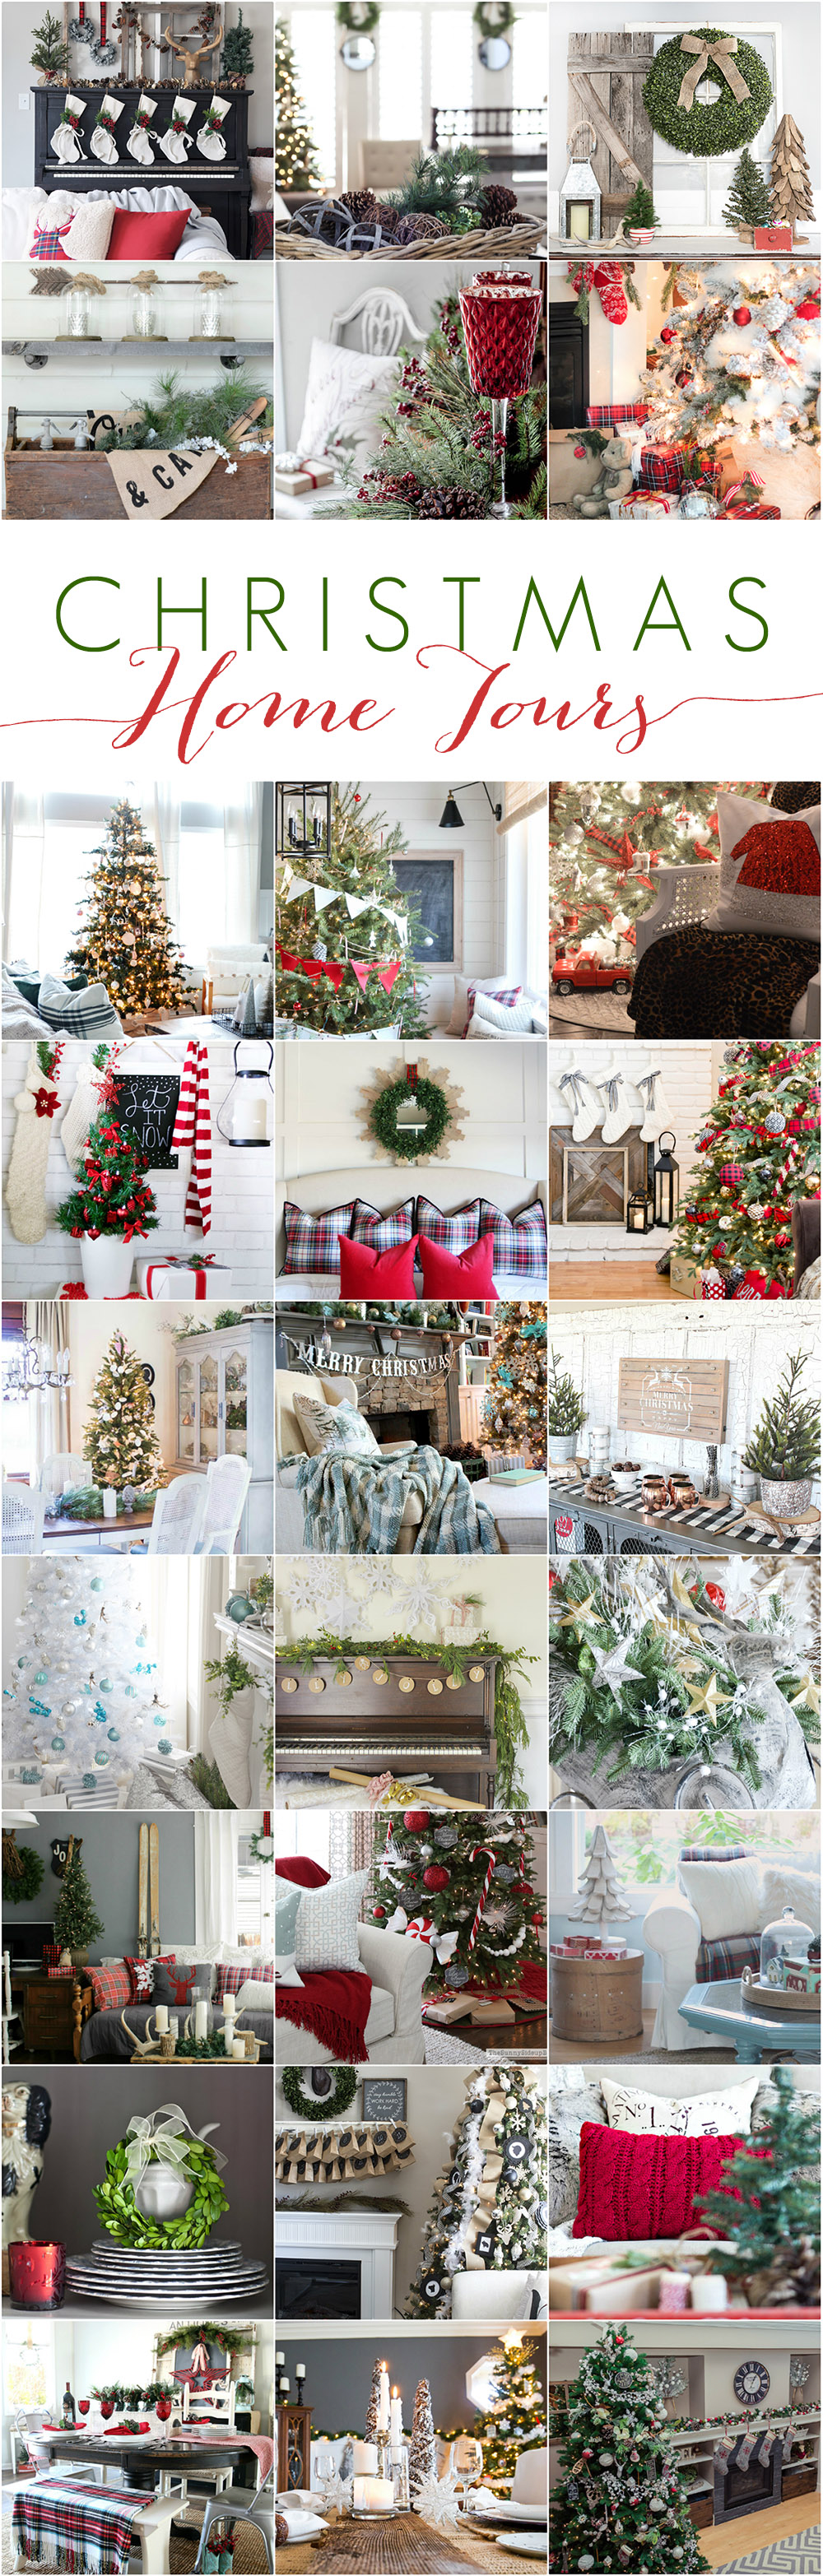 Looking for Christmas decor inspiration? See lots of holiday decor ideas here at the Cherished Christmas Home Tour with Country Living magazine! 27 talented Bloggers Christmas Home Tours at www.settingforfour.com